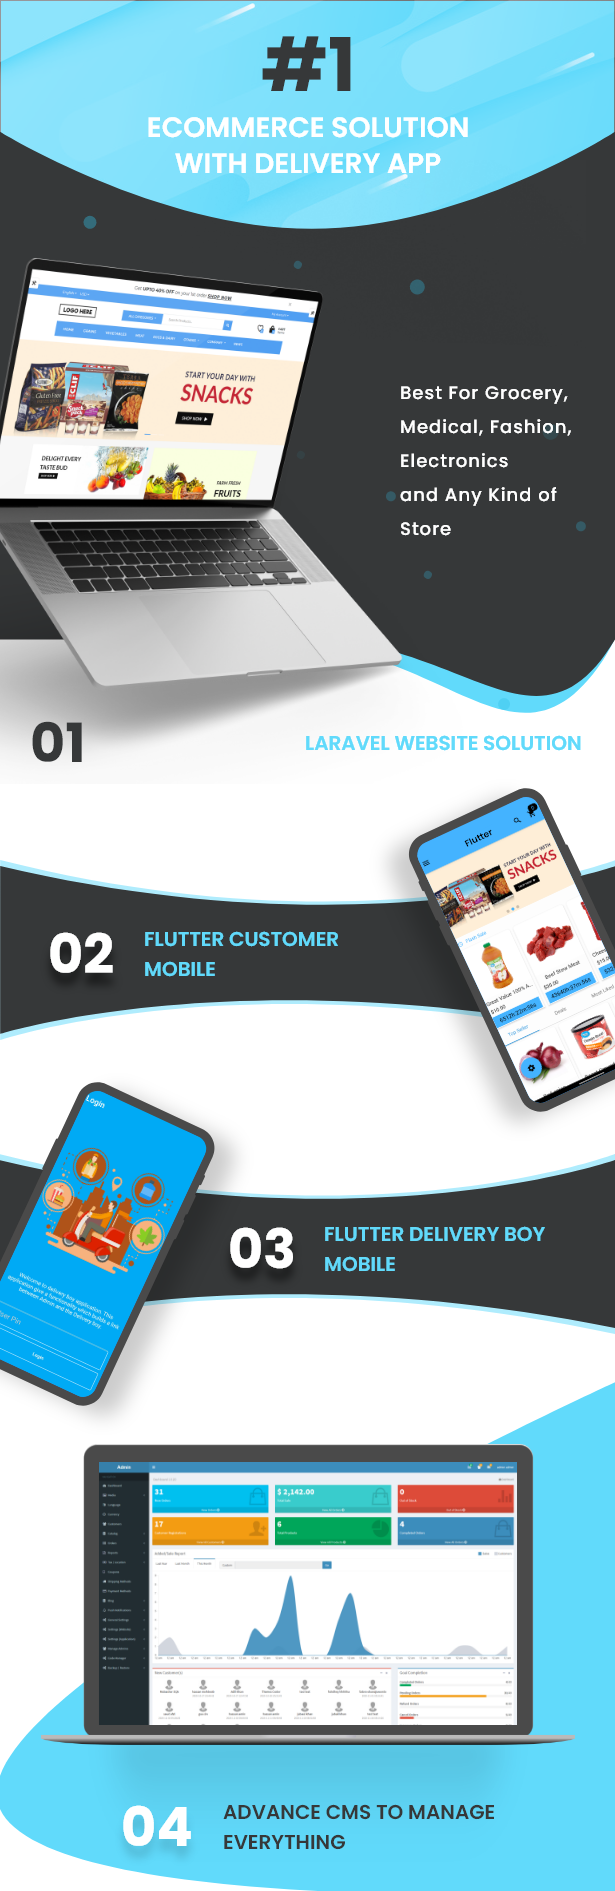 Flutter Delivery Solution Apps with Advance Website and CMS - 1